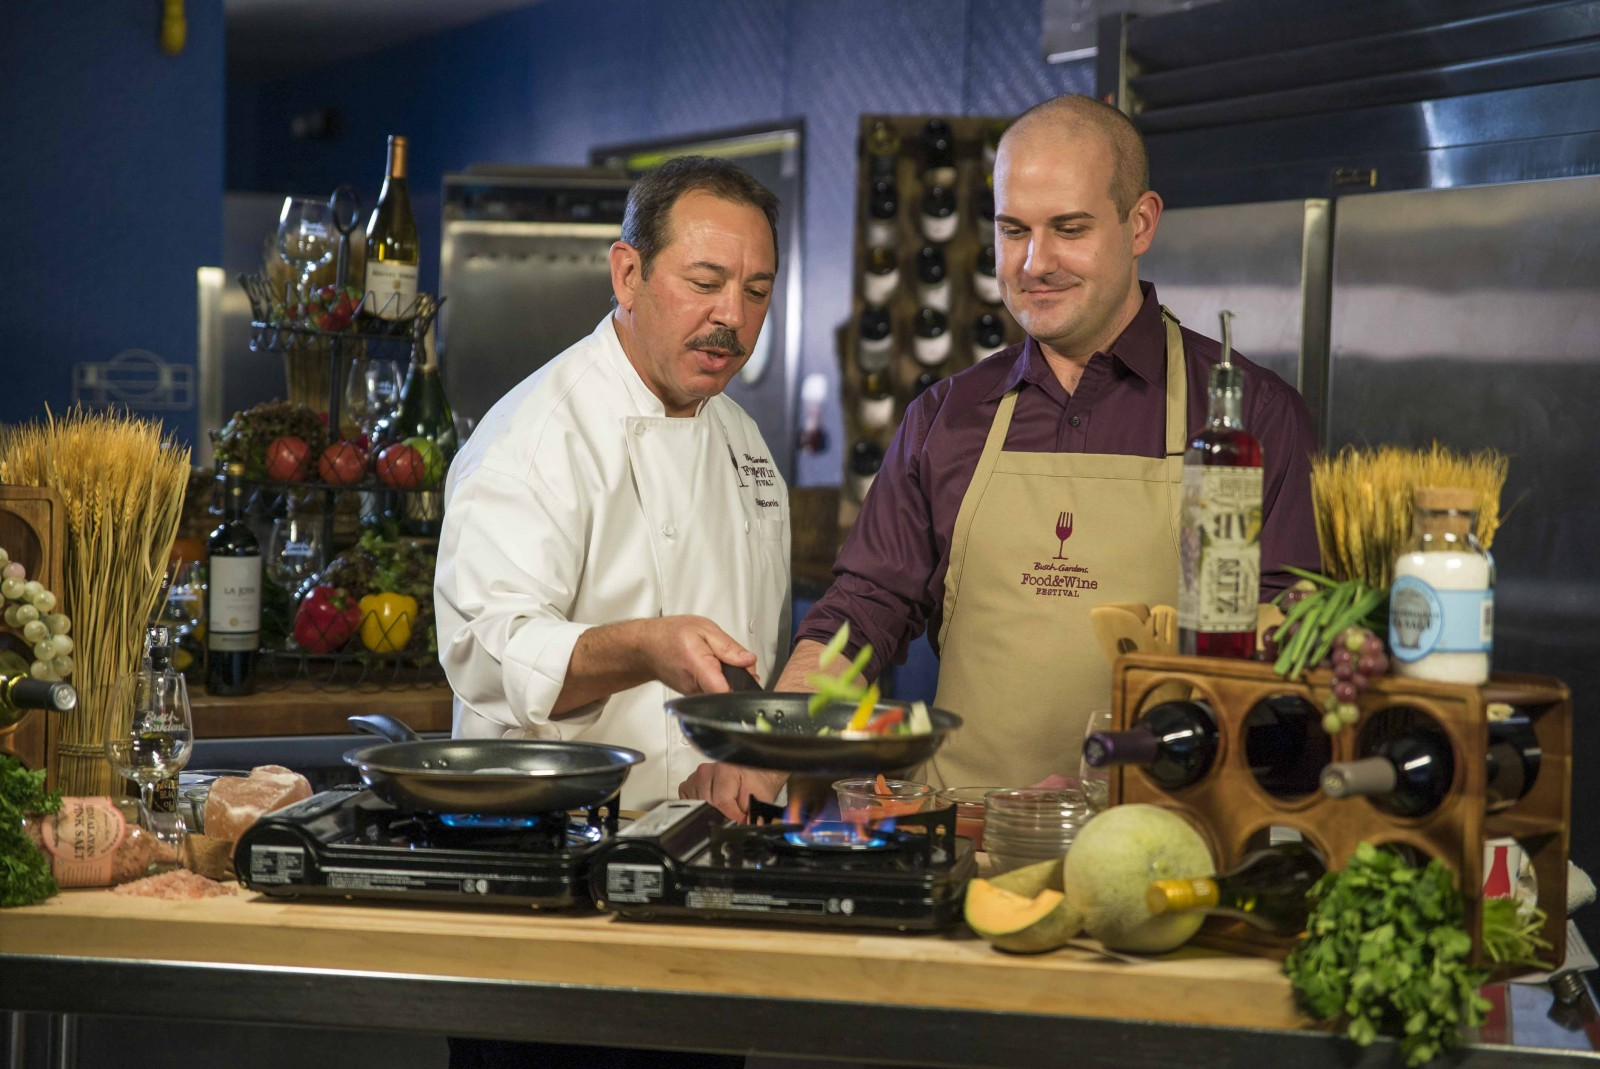 Busch Gardens Tampa Releases 2016 Food Wine Festival Menu Corksandcoasters On The Go In Mco